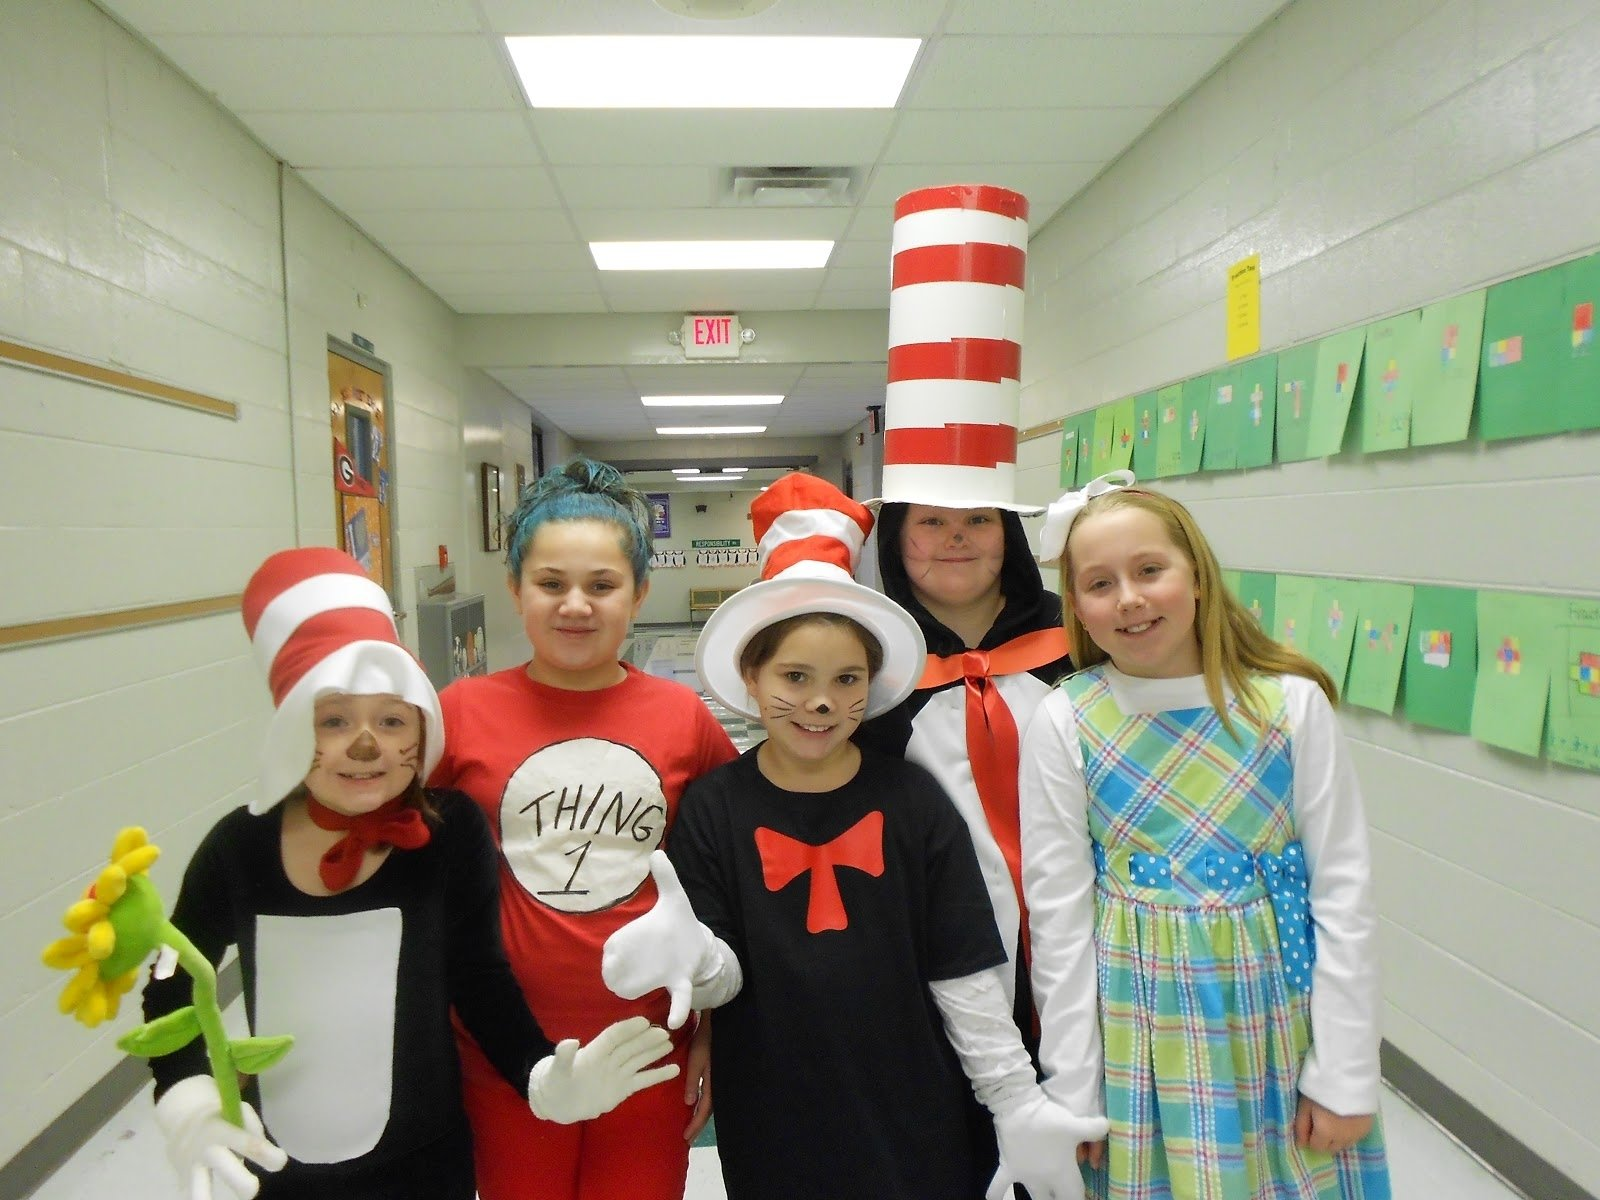 10 Stylish Ideas For Dr. Seuss Day mrs mcdonalds 4th grade dr seuss day book character costume ideas 2020